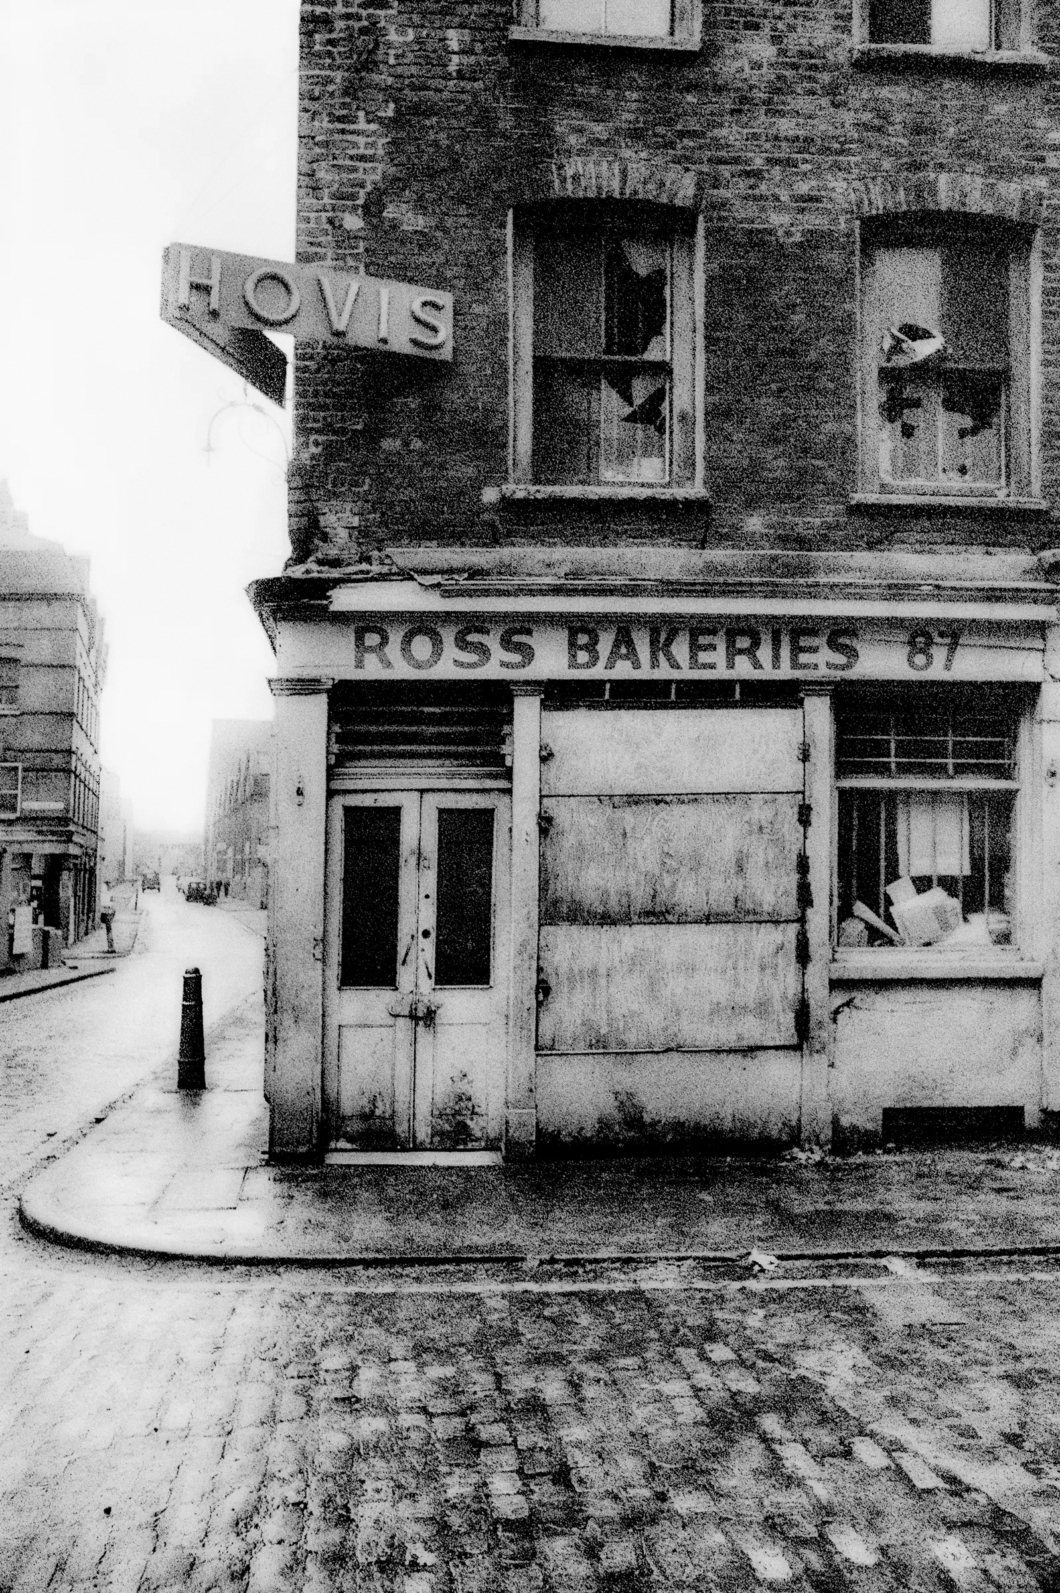 Ross Bakeries 1966 © John Claridge